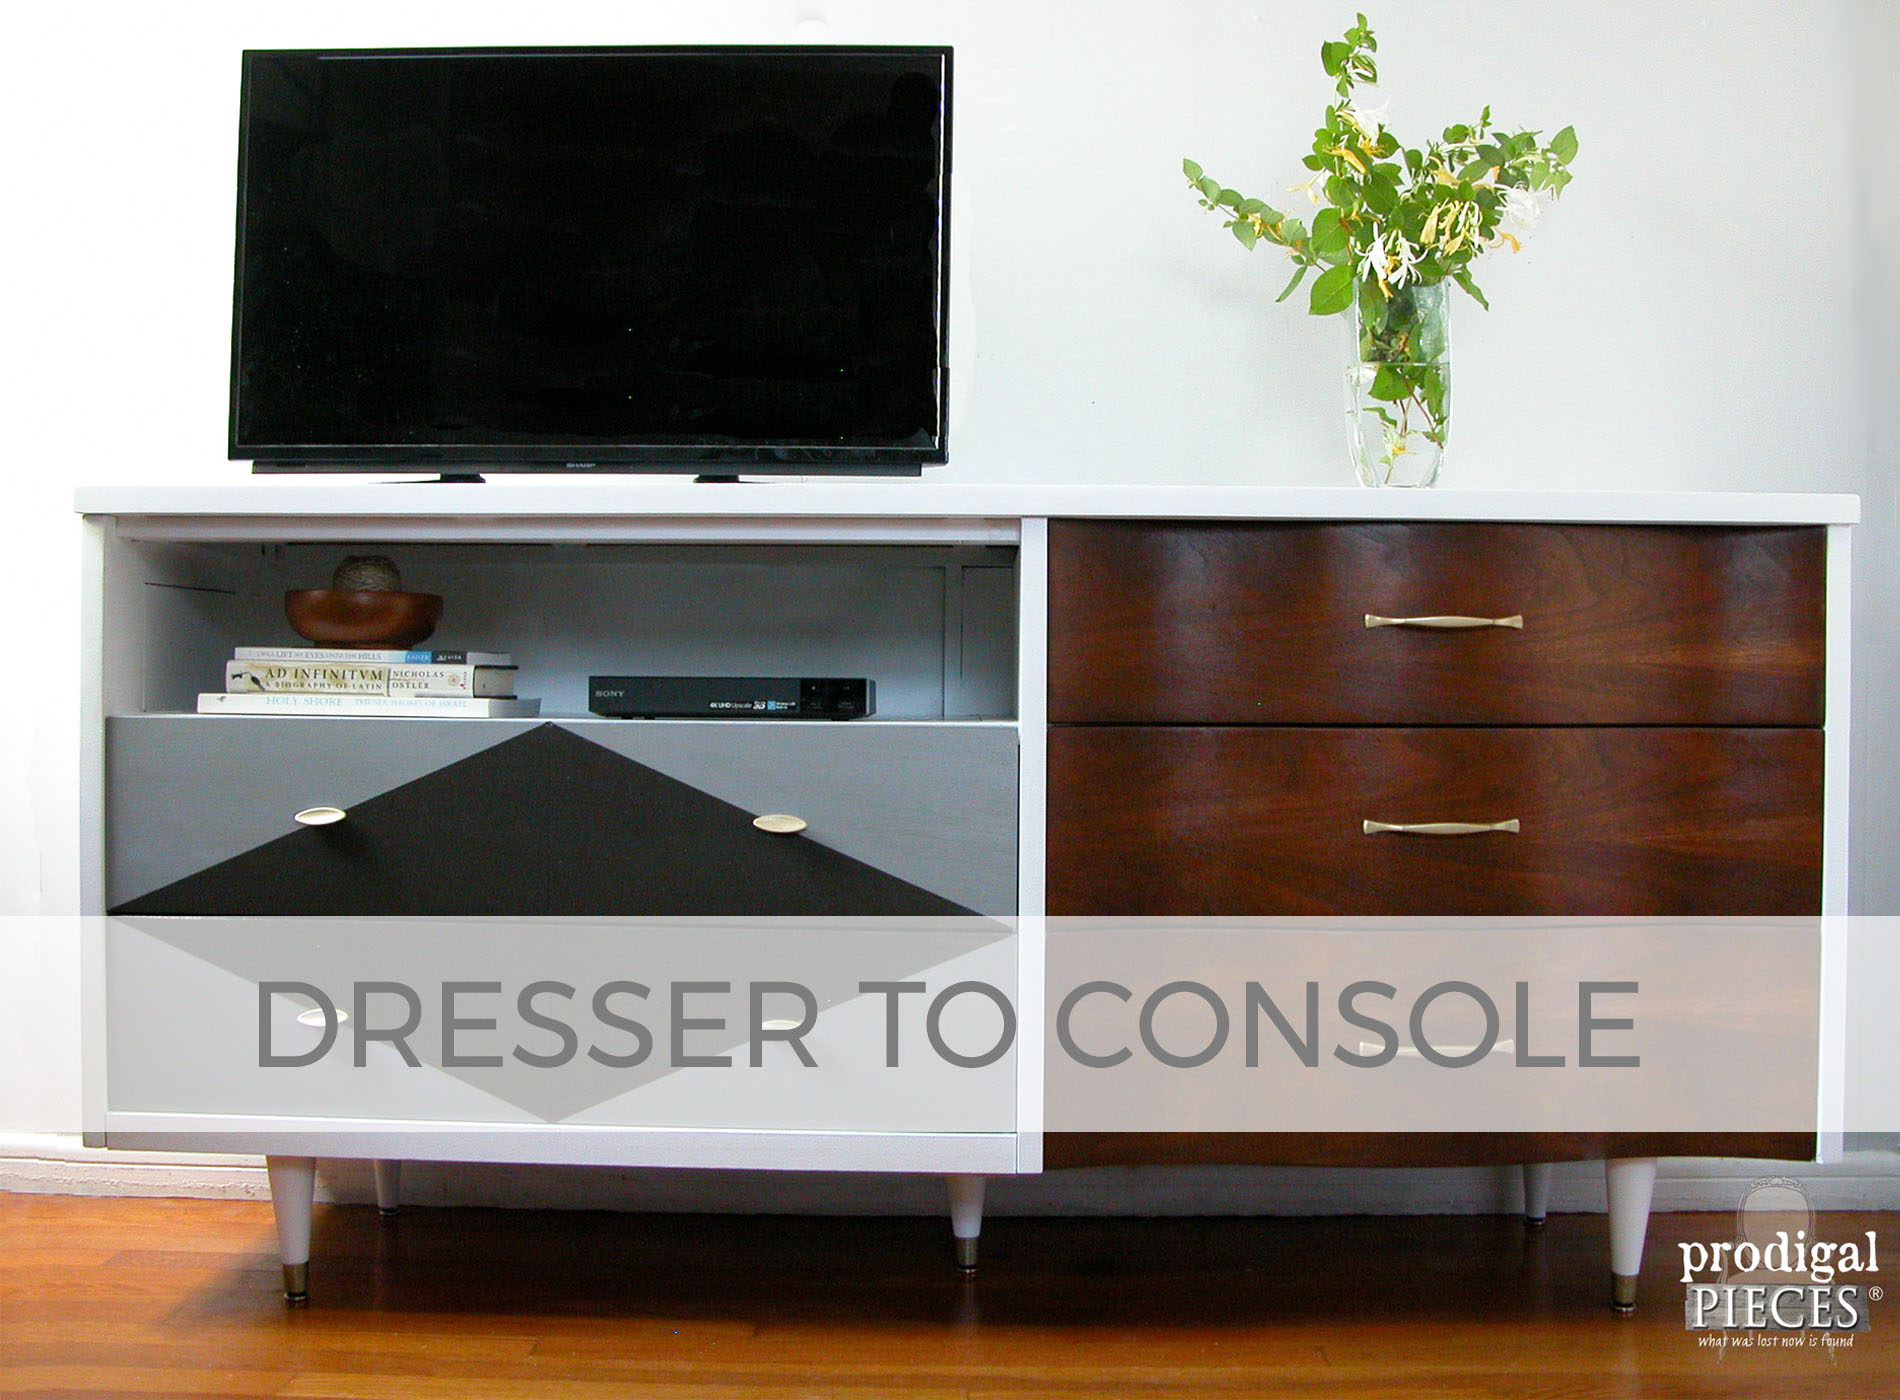 Curbside Dresser turned Entertainment Console by Larissa of Prodigal Pieces | prodigalpieces.com